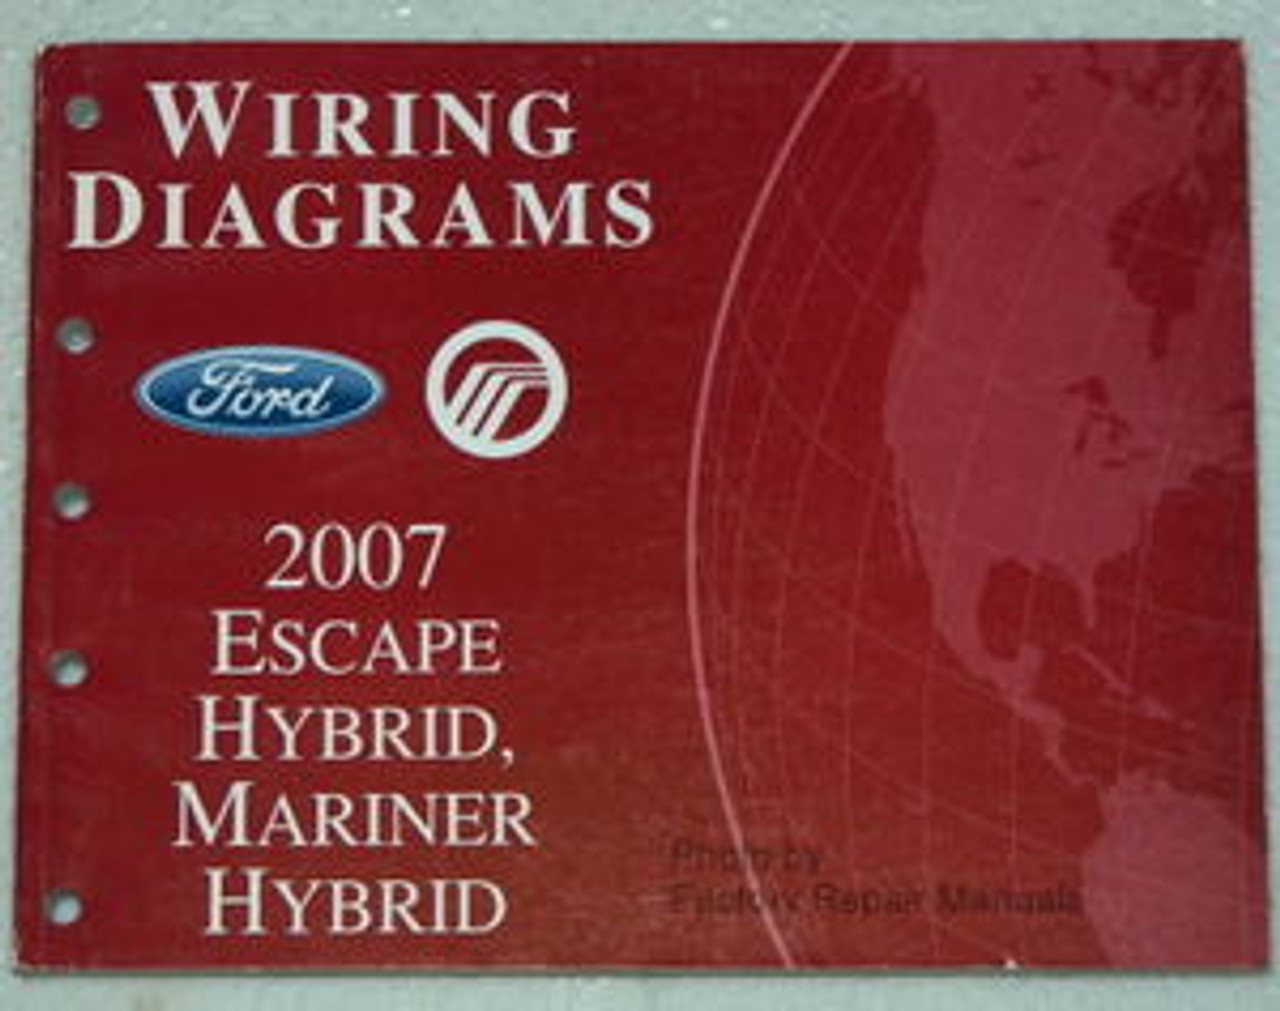 2007 Ford Escape  Mercury Mariner Electrical Wiring Diagrams - Hybrid Models